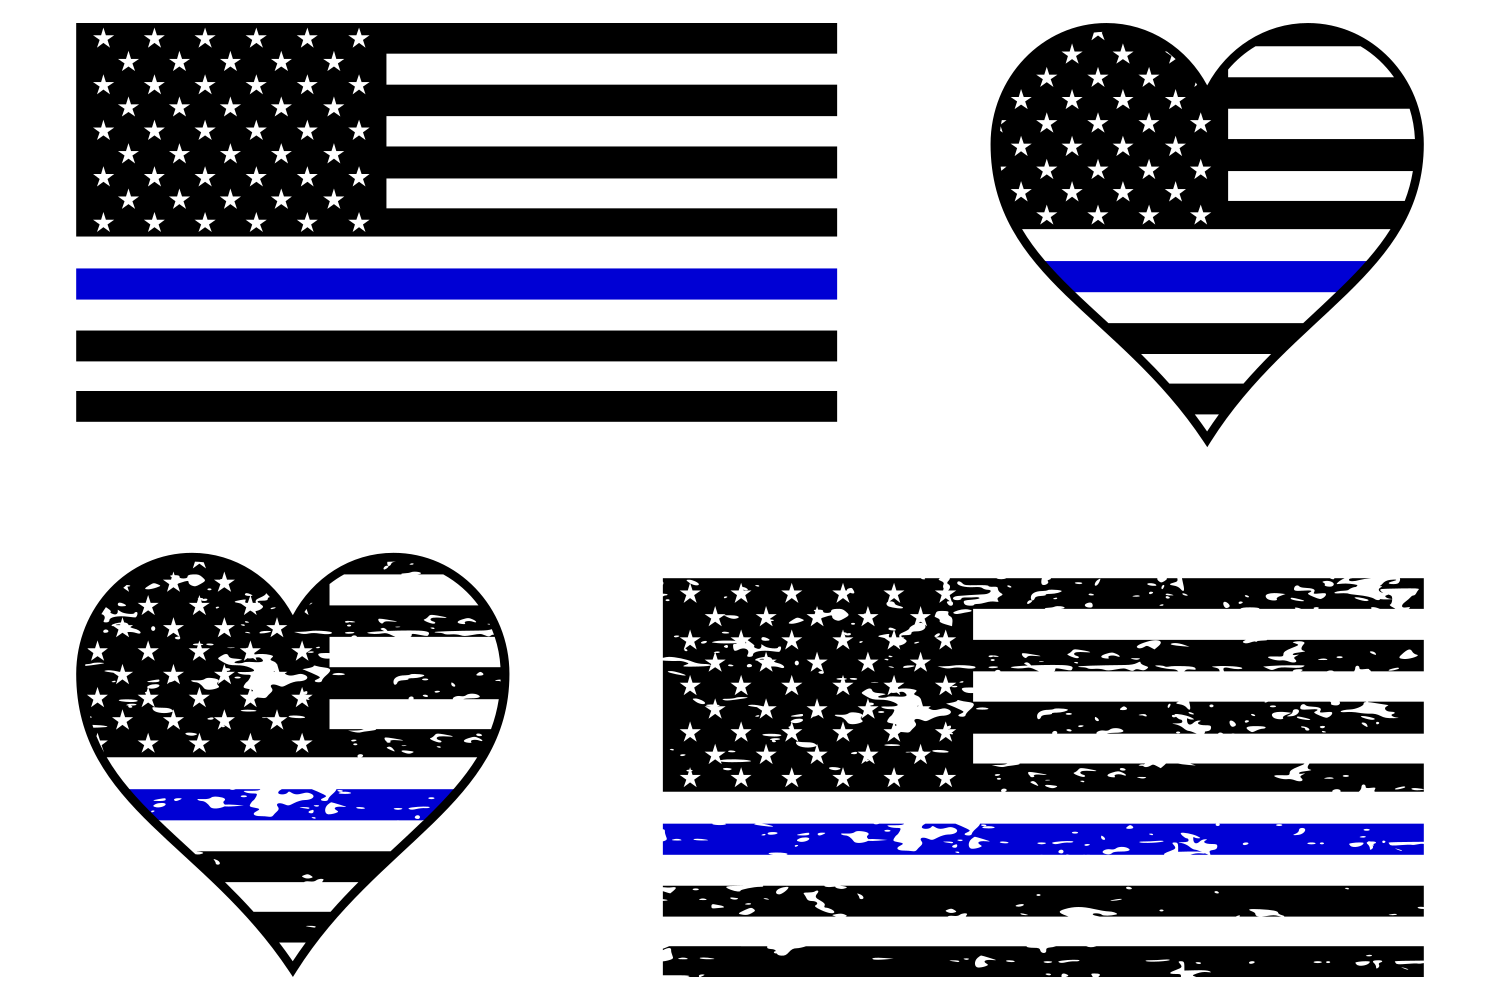 Police Blue Line Flag SVG.